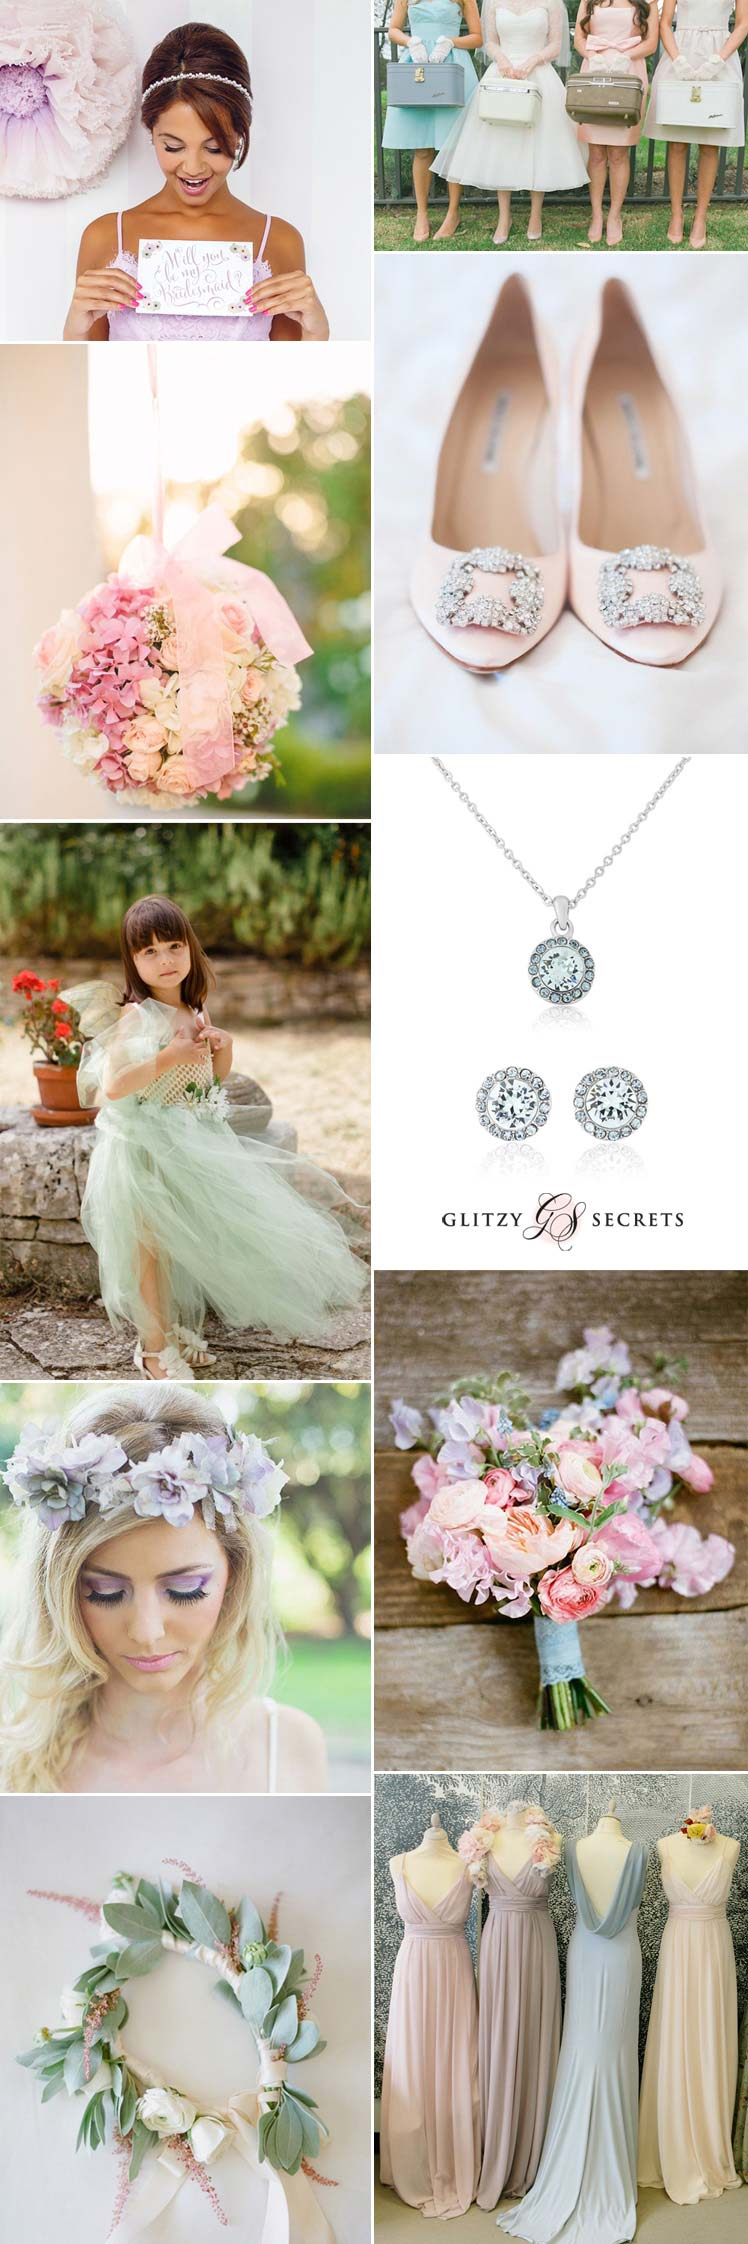 Bridesmaid inspiration for a pastel wedding theme